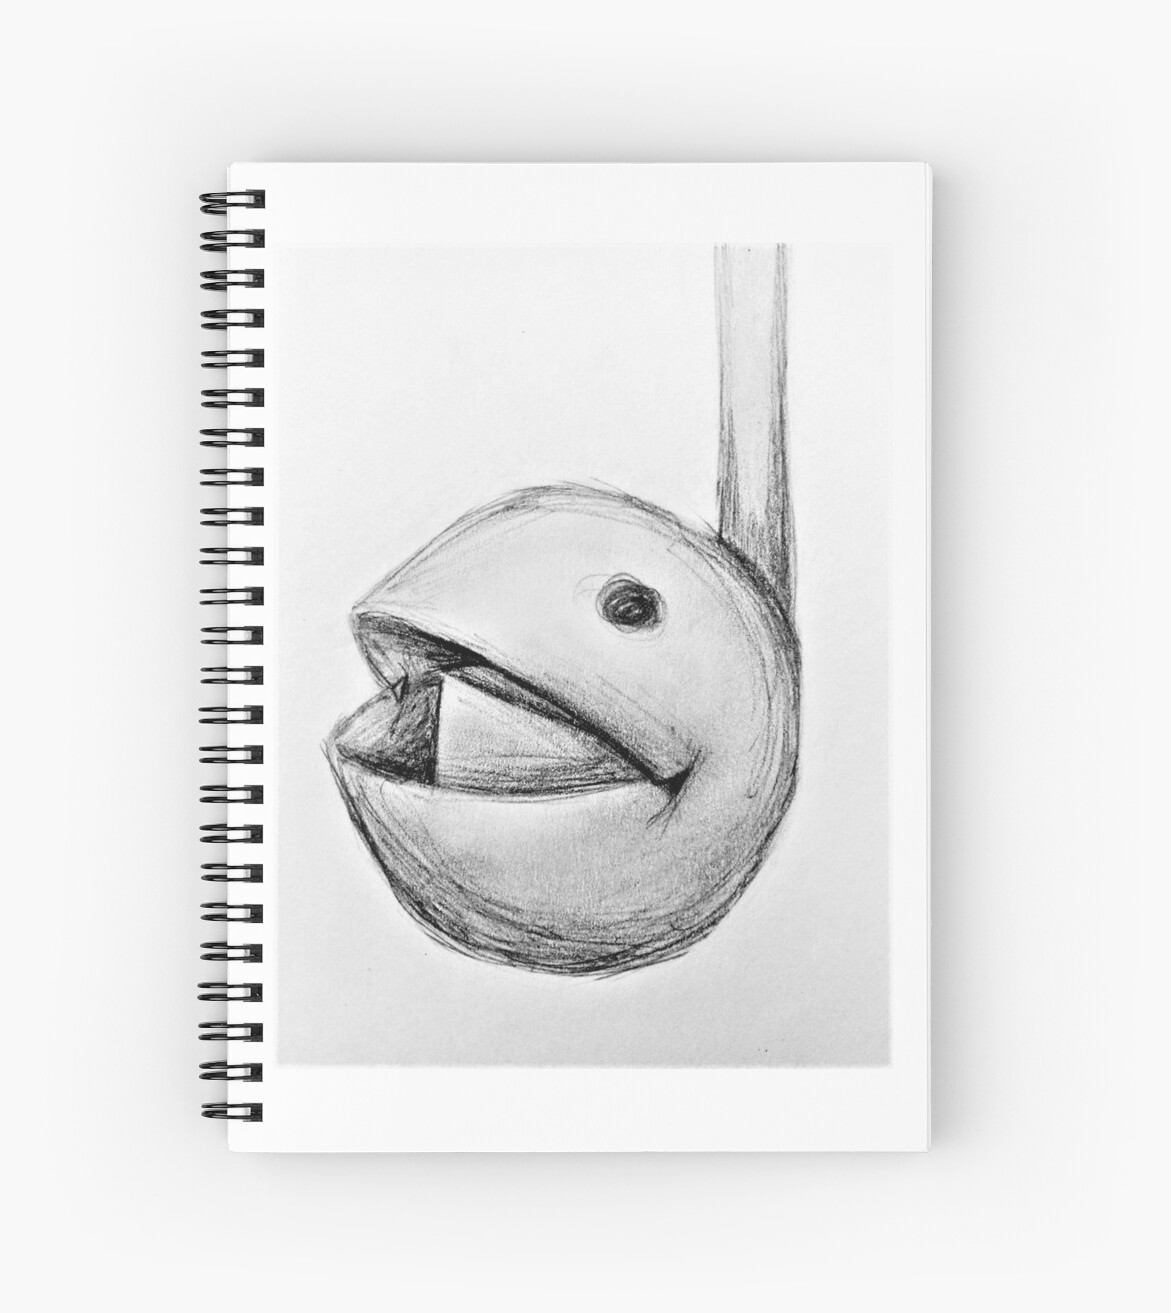 Otamatone pencil sketch